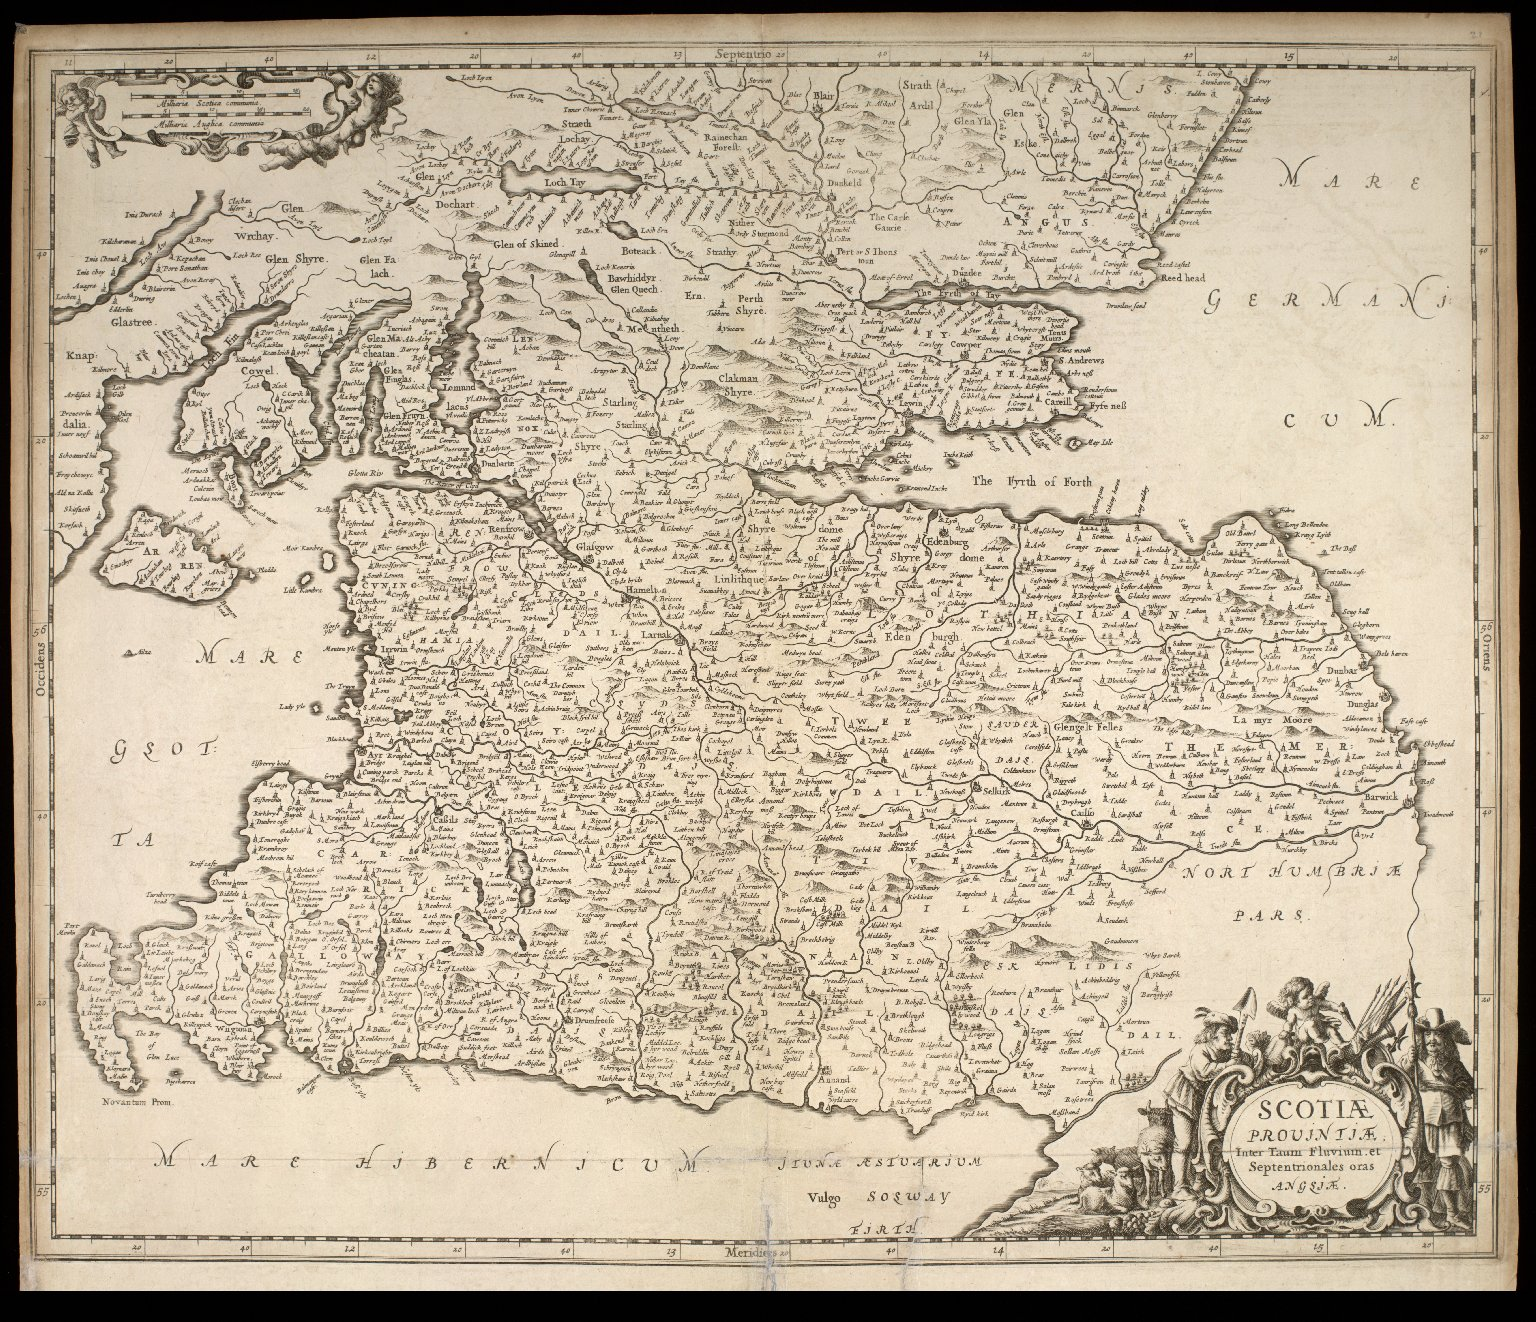 Atlas Scoticus, or a Description of Scotland Ancient and Modern. [026 of 259]